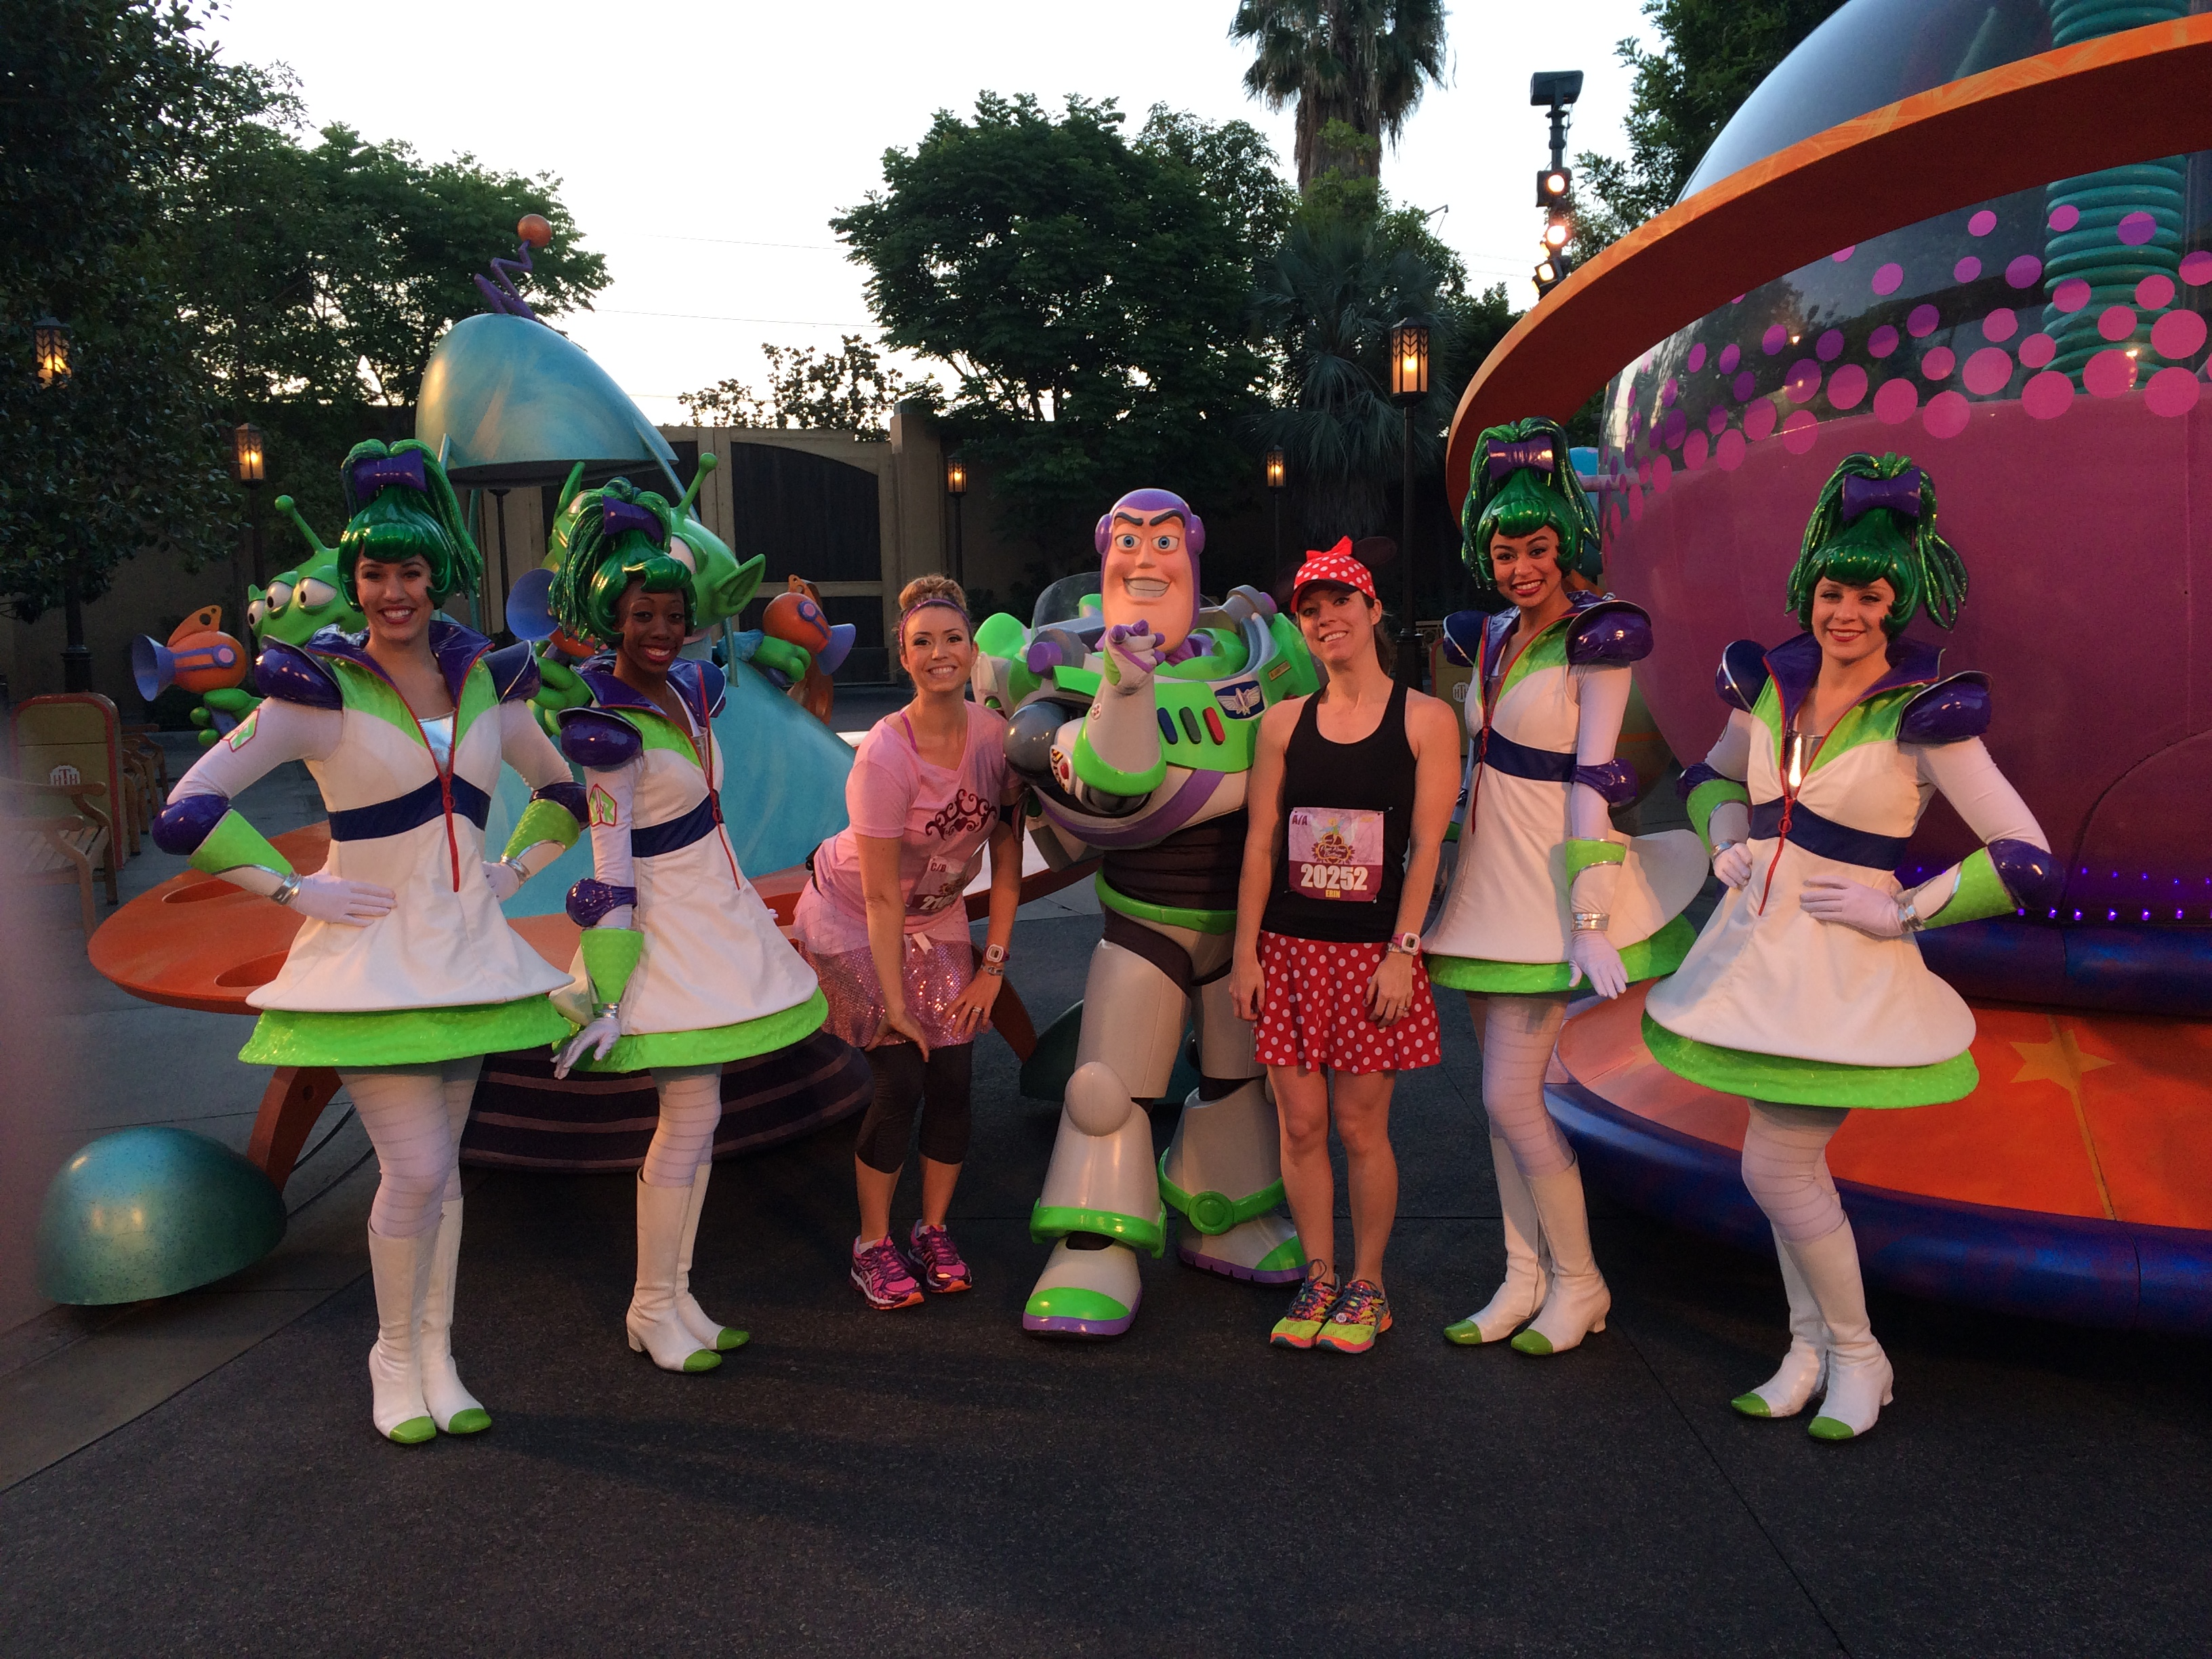 Packing list and tips for the Disneyland Half Marathon weekend